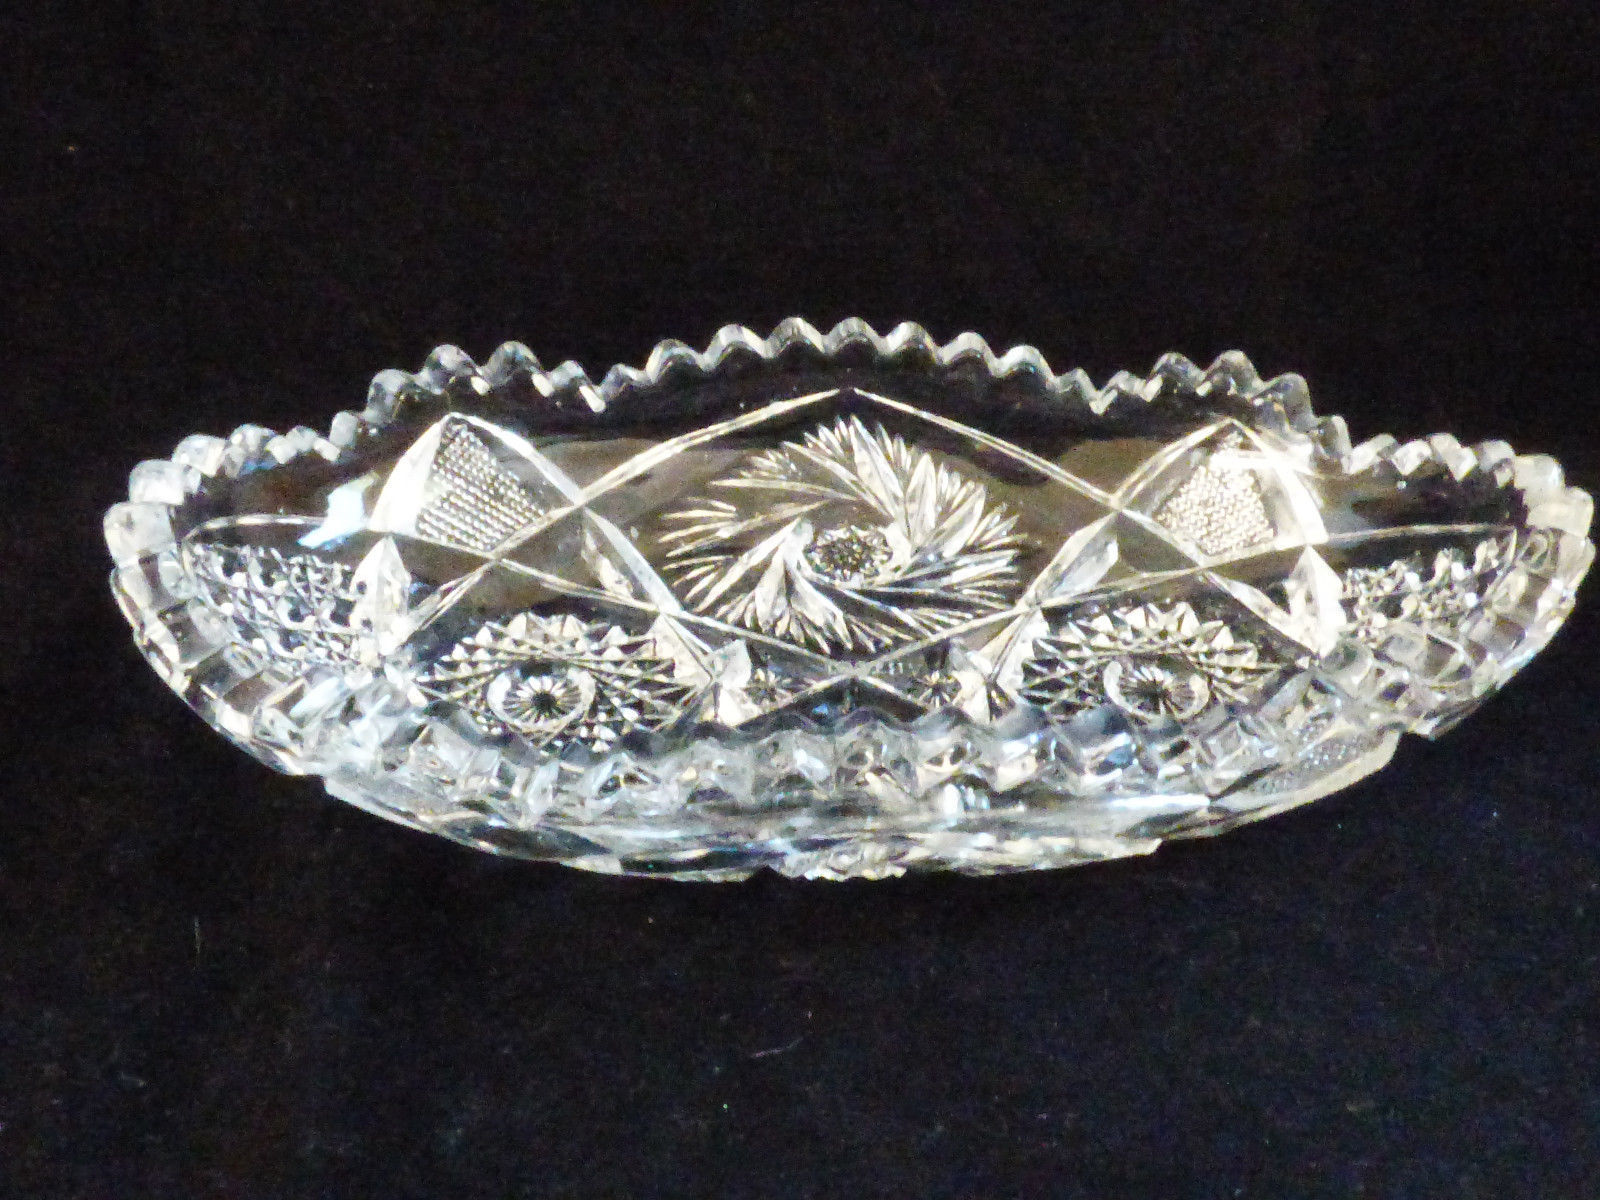 VTG EARLY AMERICAN ARTCUT PRESSED CUT GLASS BOWL RELISH DISH BON BON CANDY NUTS